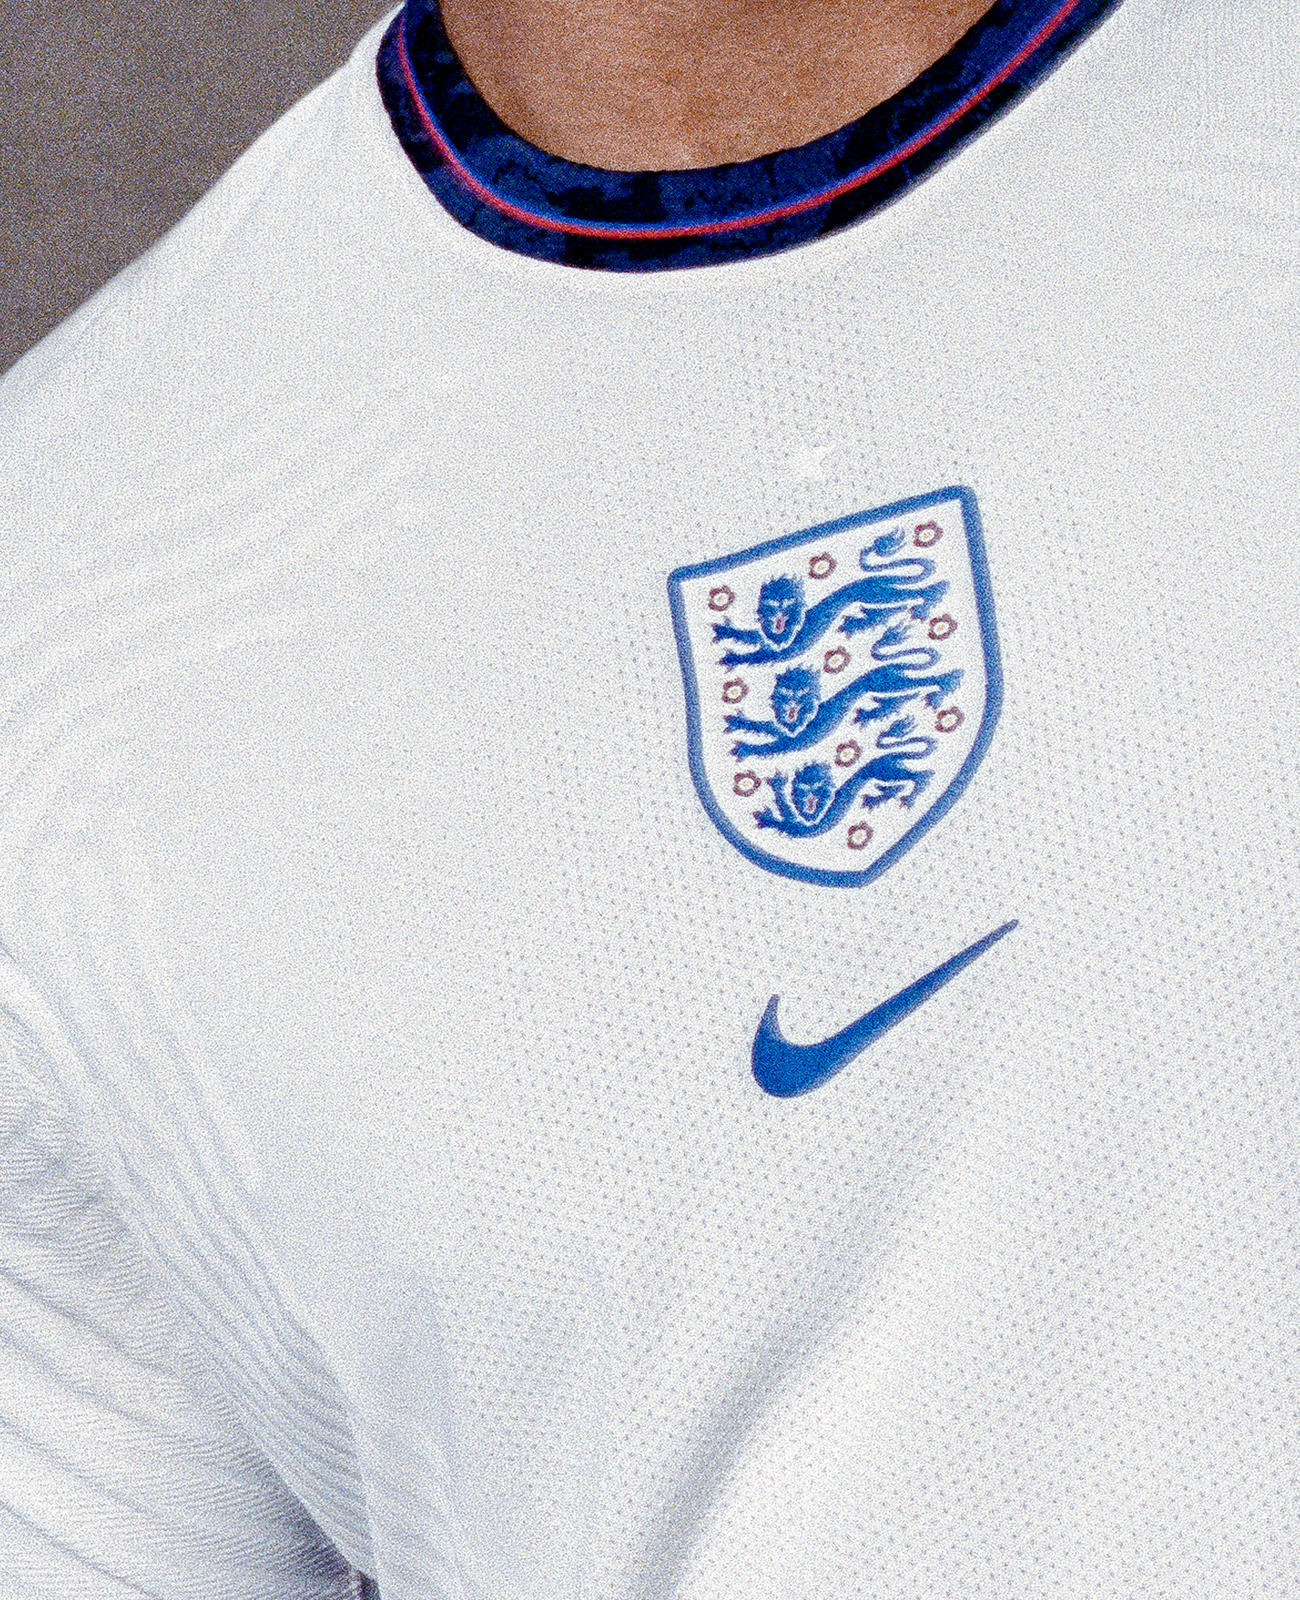 maillot-angleterre-2020-nike-3